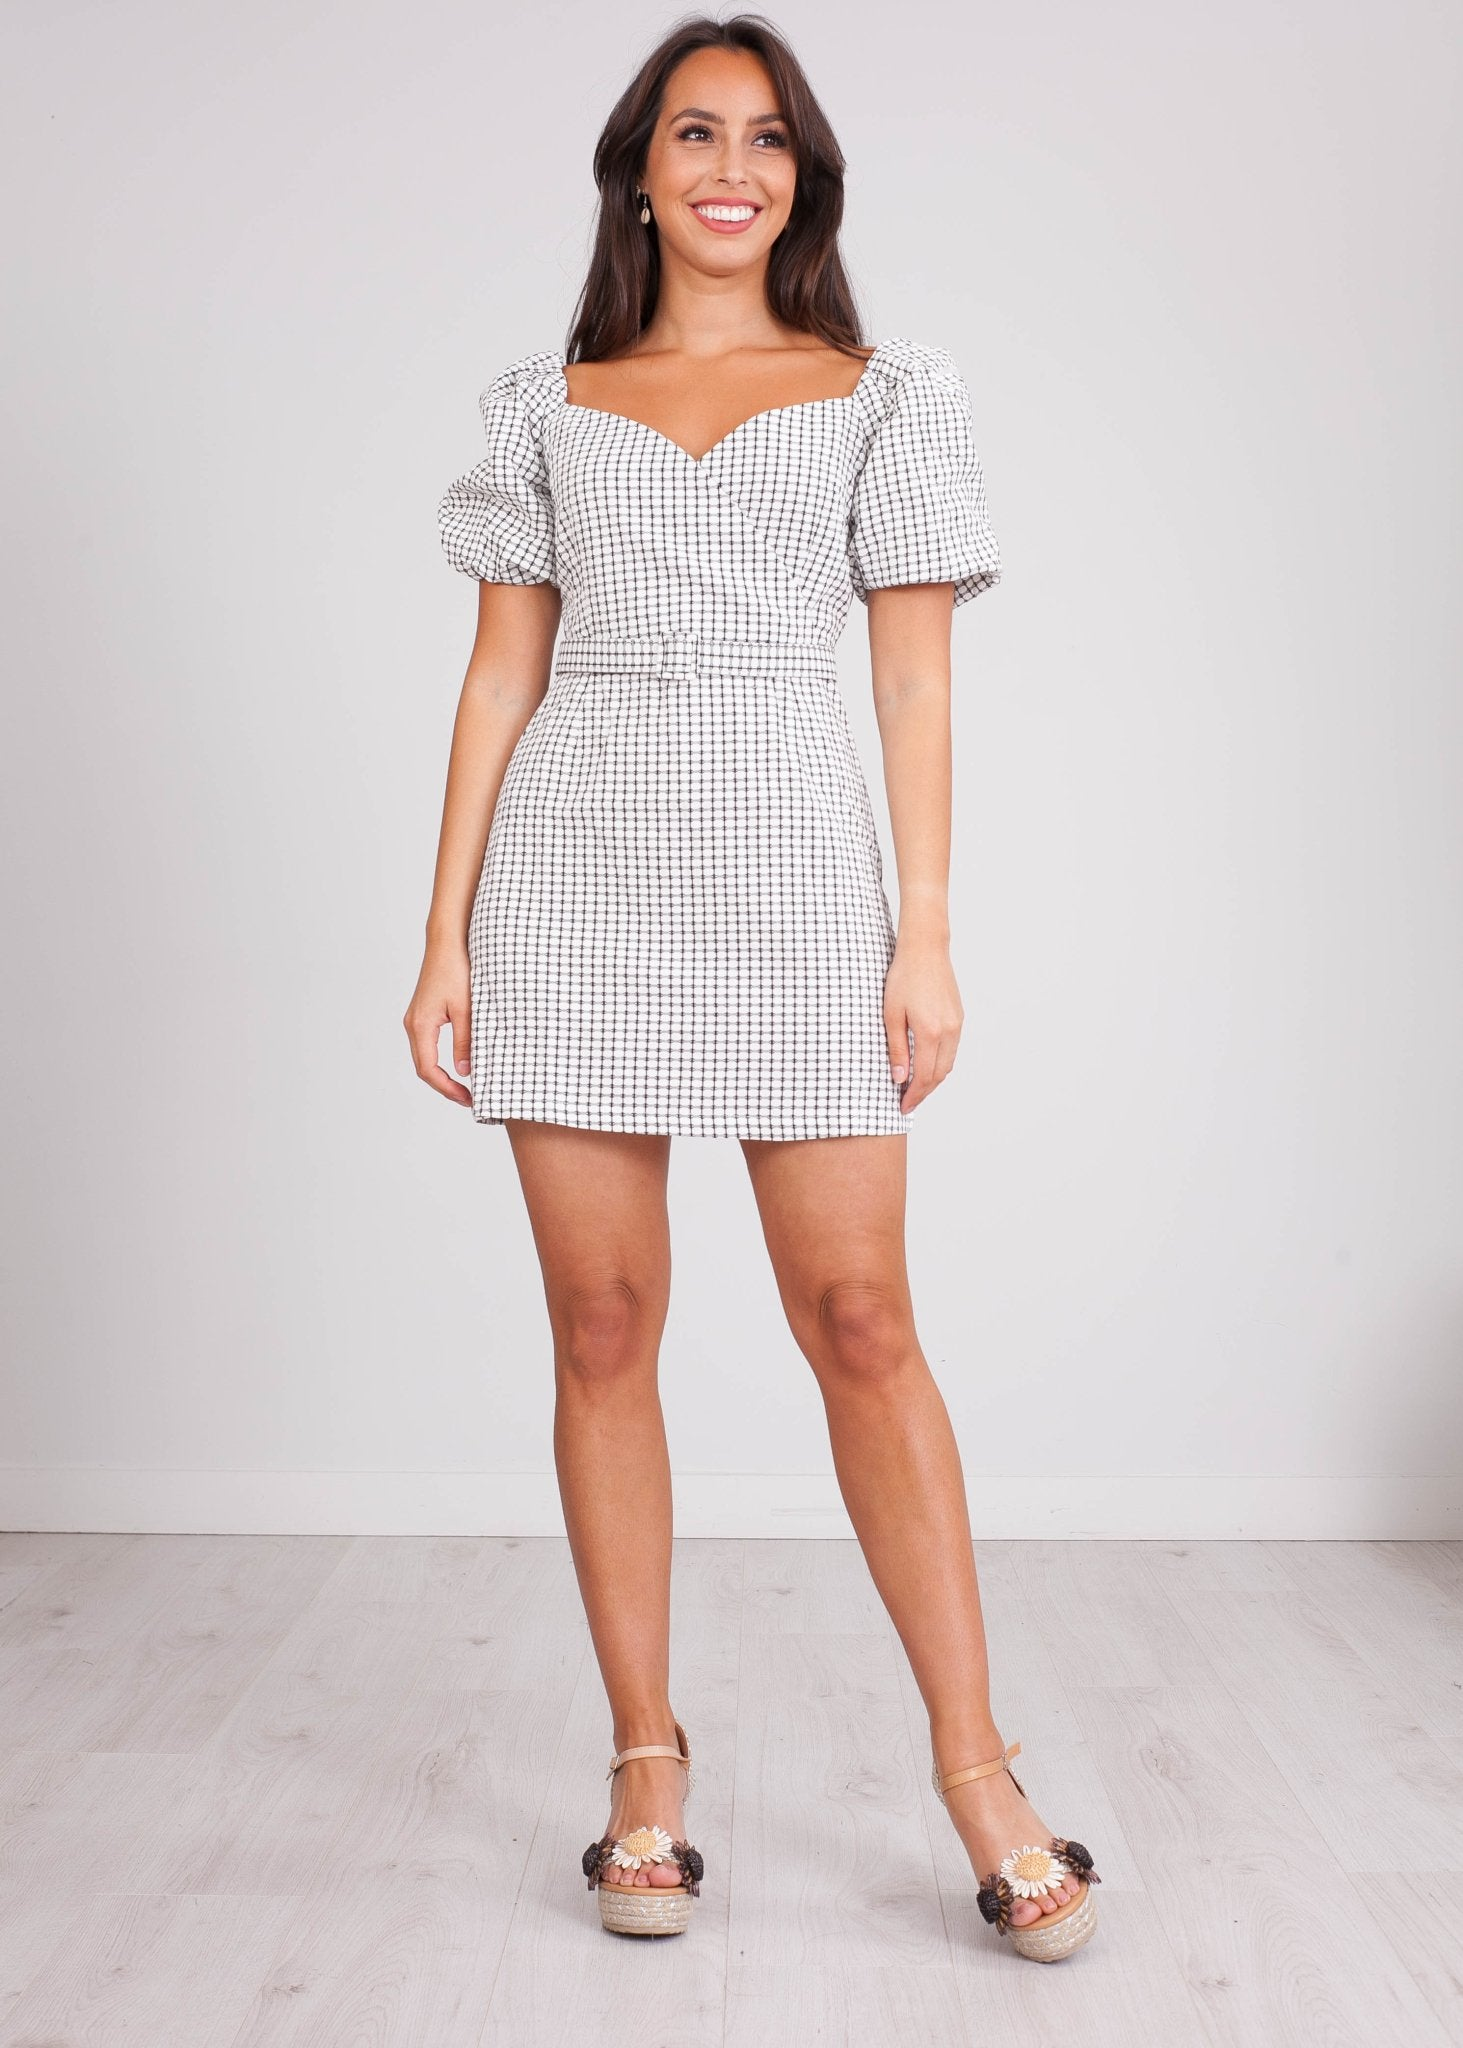 FiFi Black & White Dress - The Walk in Wardrobe